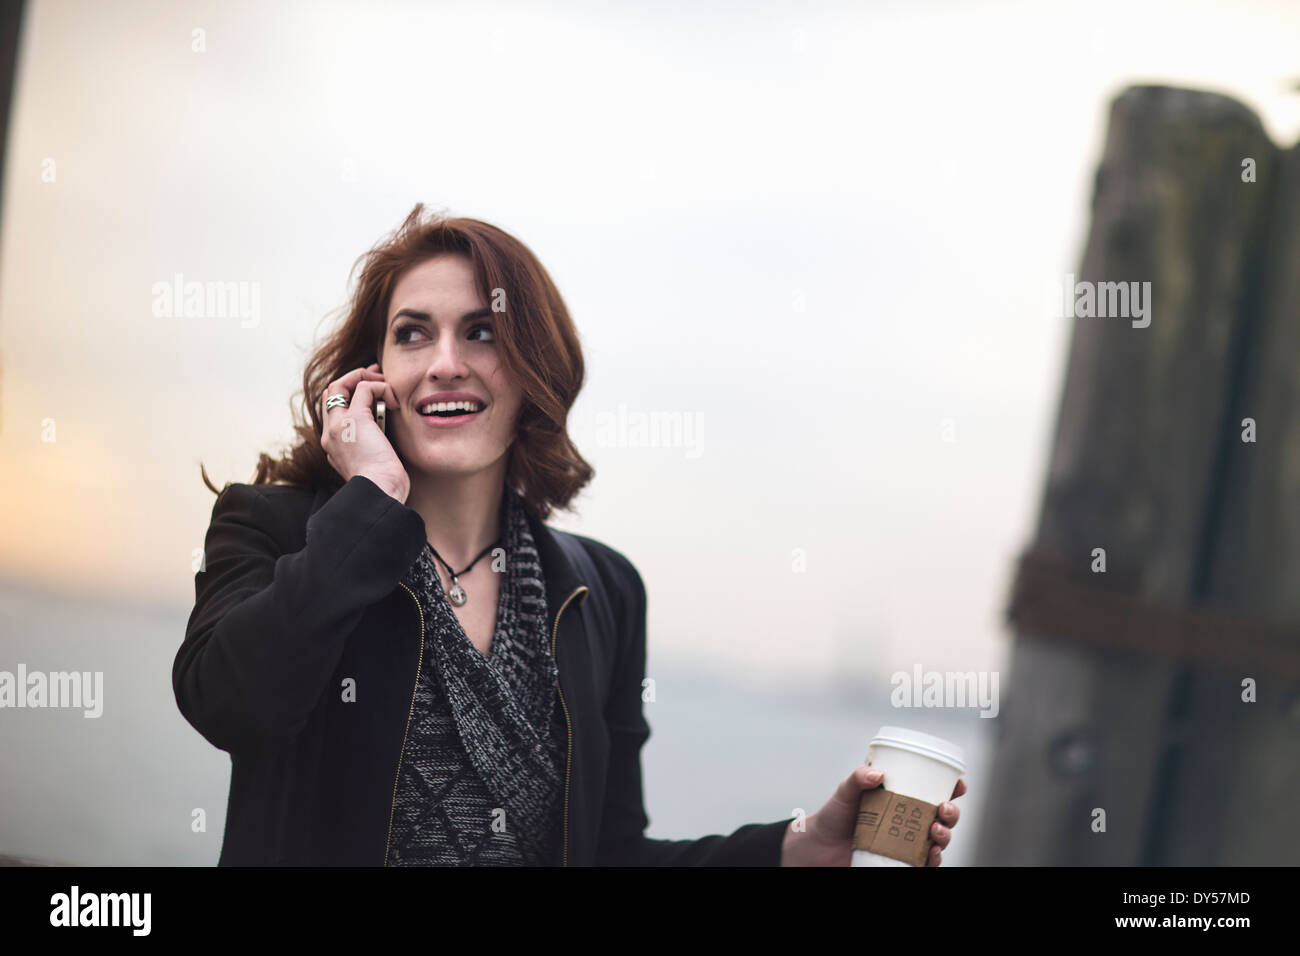 Young woman with cellphone and coffee next to Hudson river, New York, USA - Stock Image